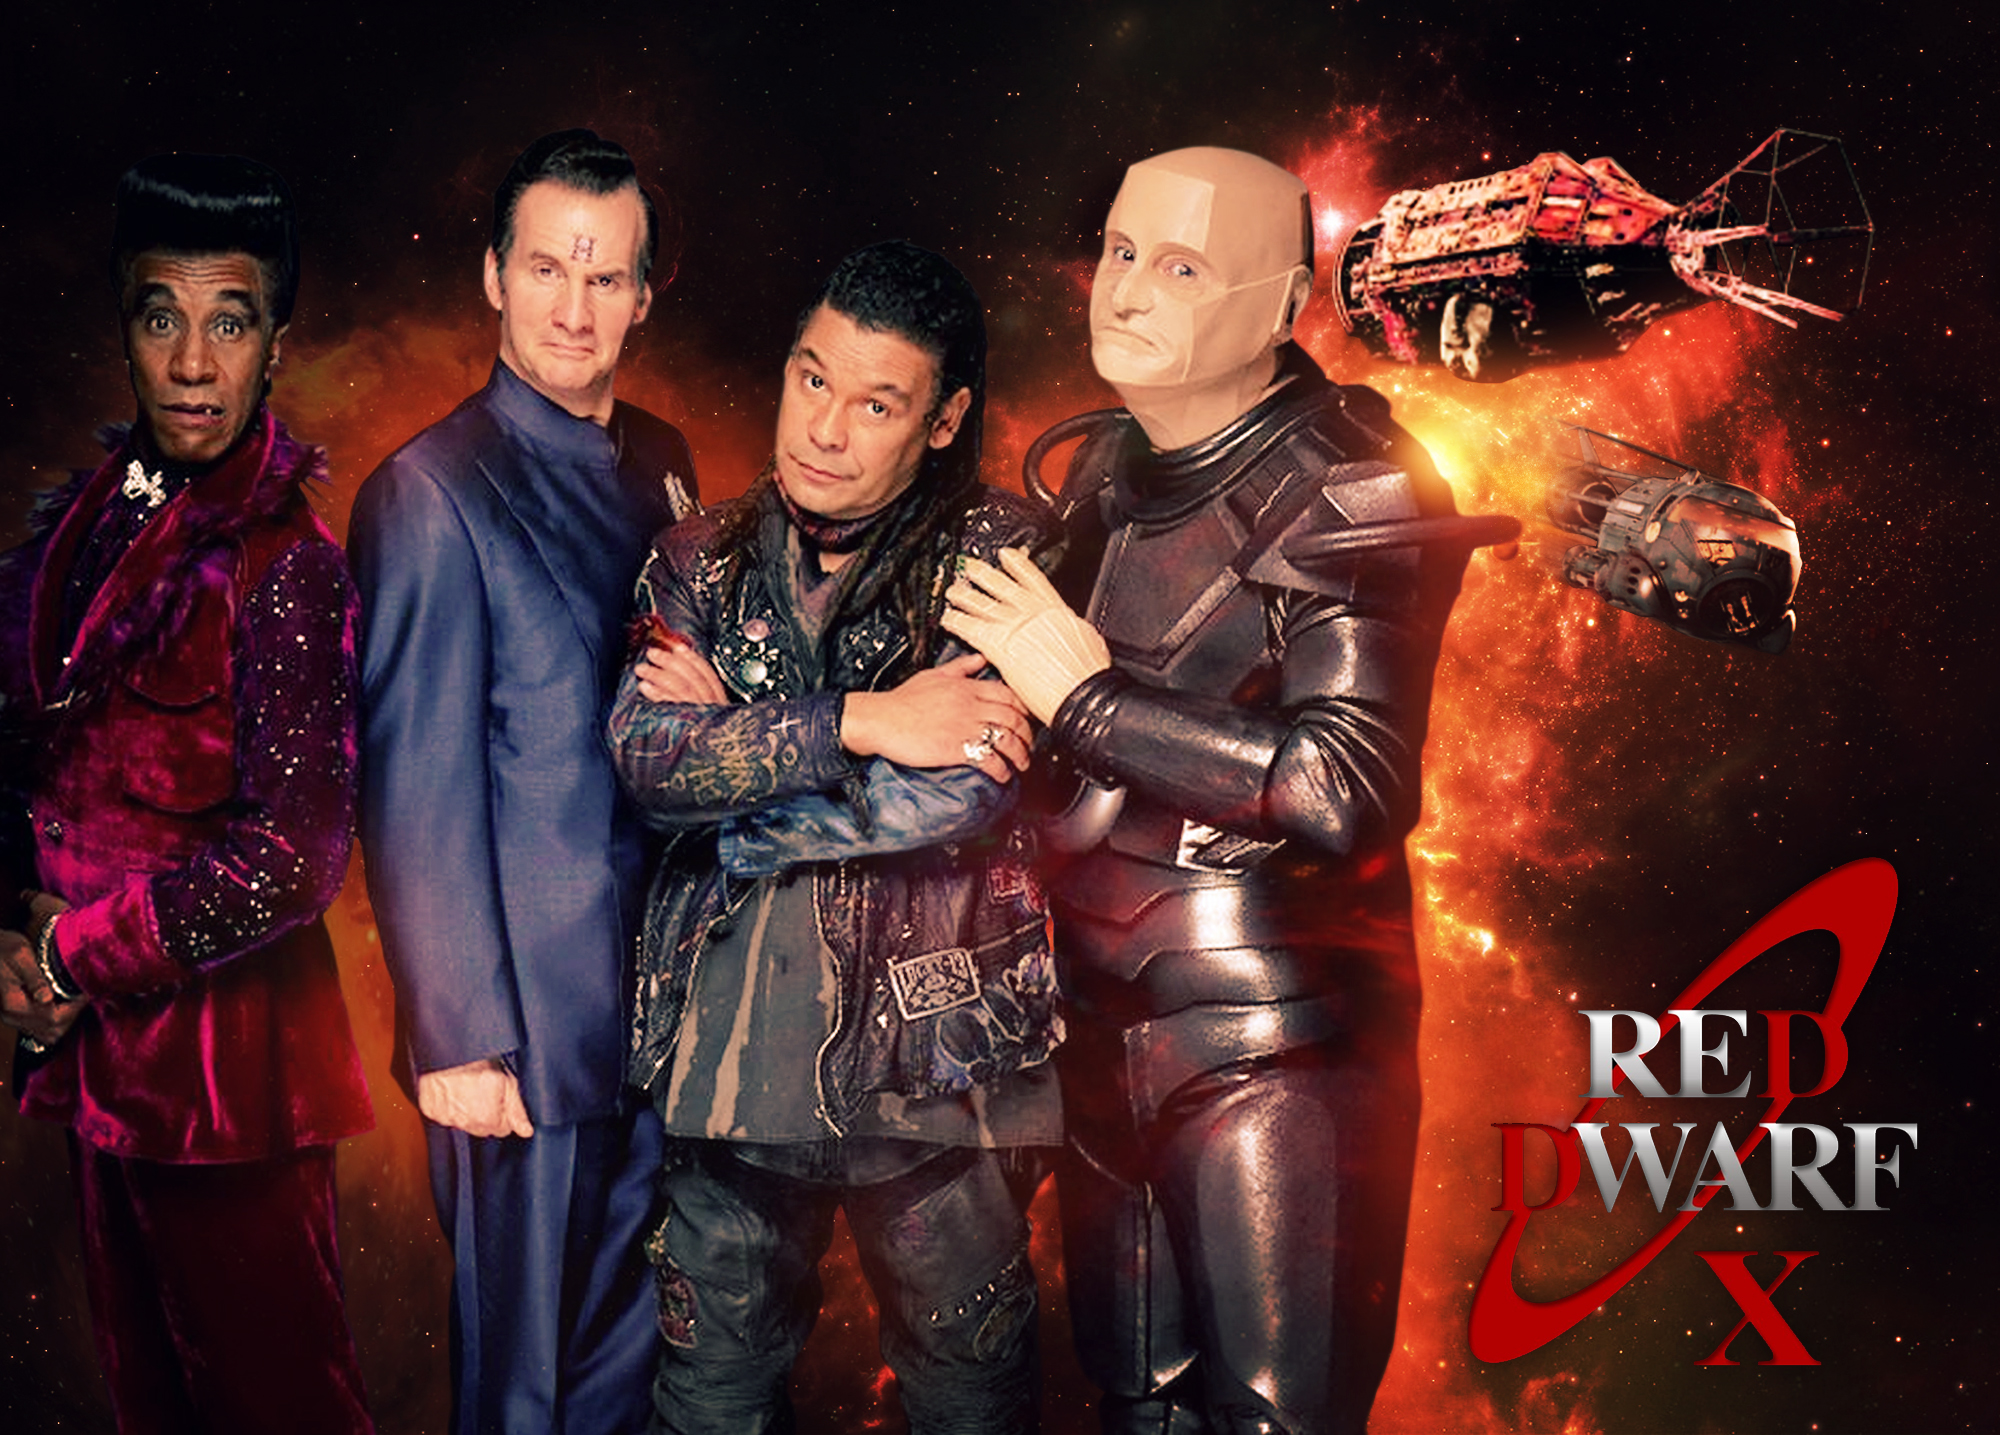 1000+ images about Red Dwarf on Pinterest | Red dwarf ...